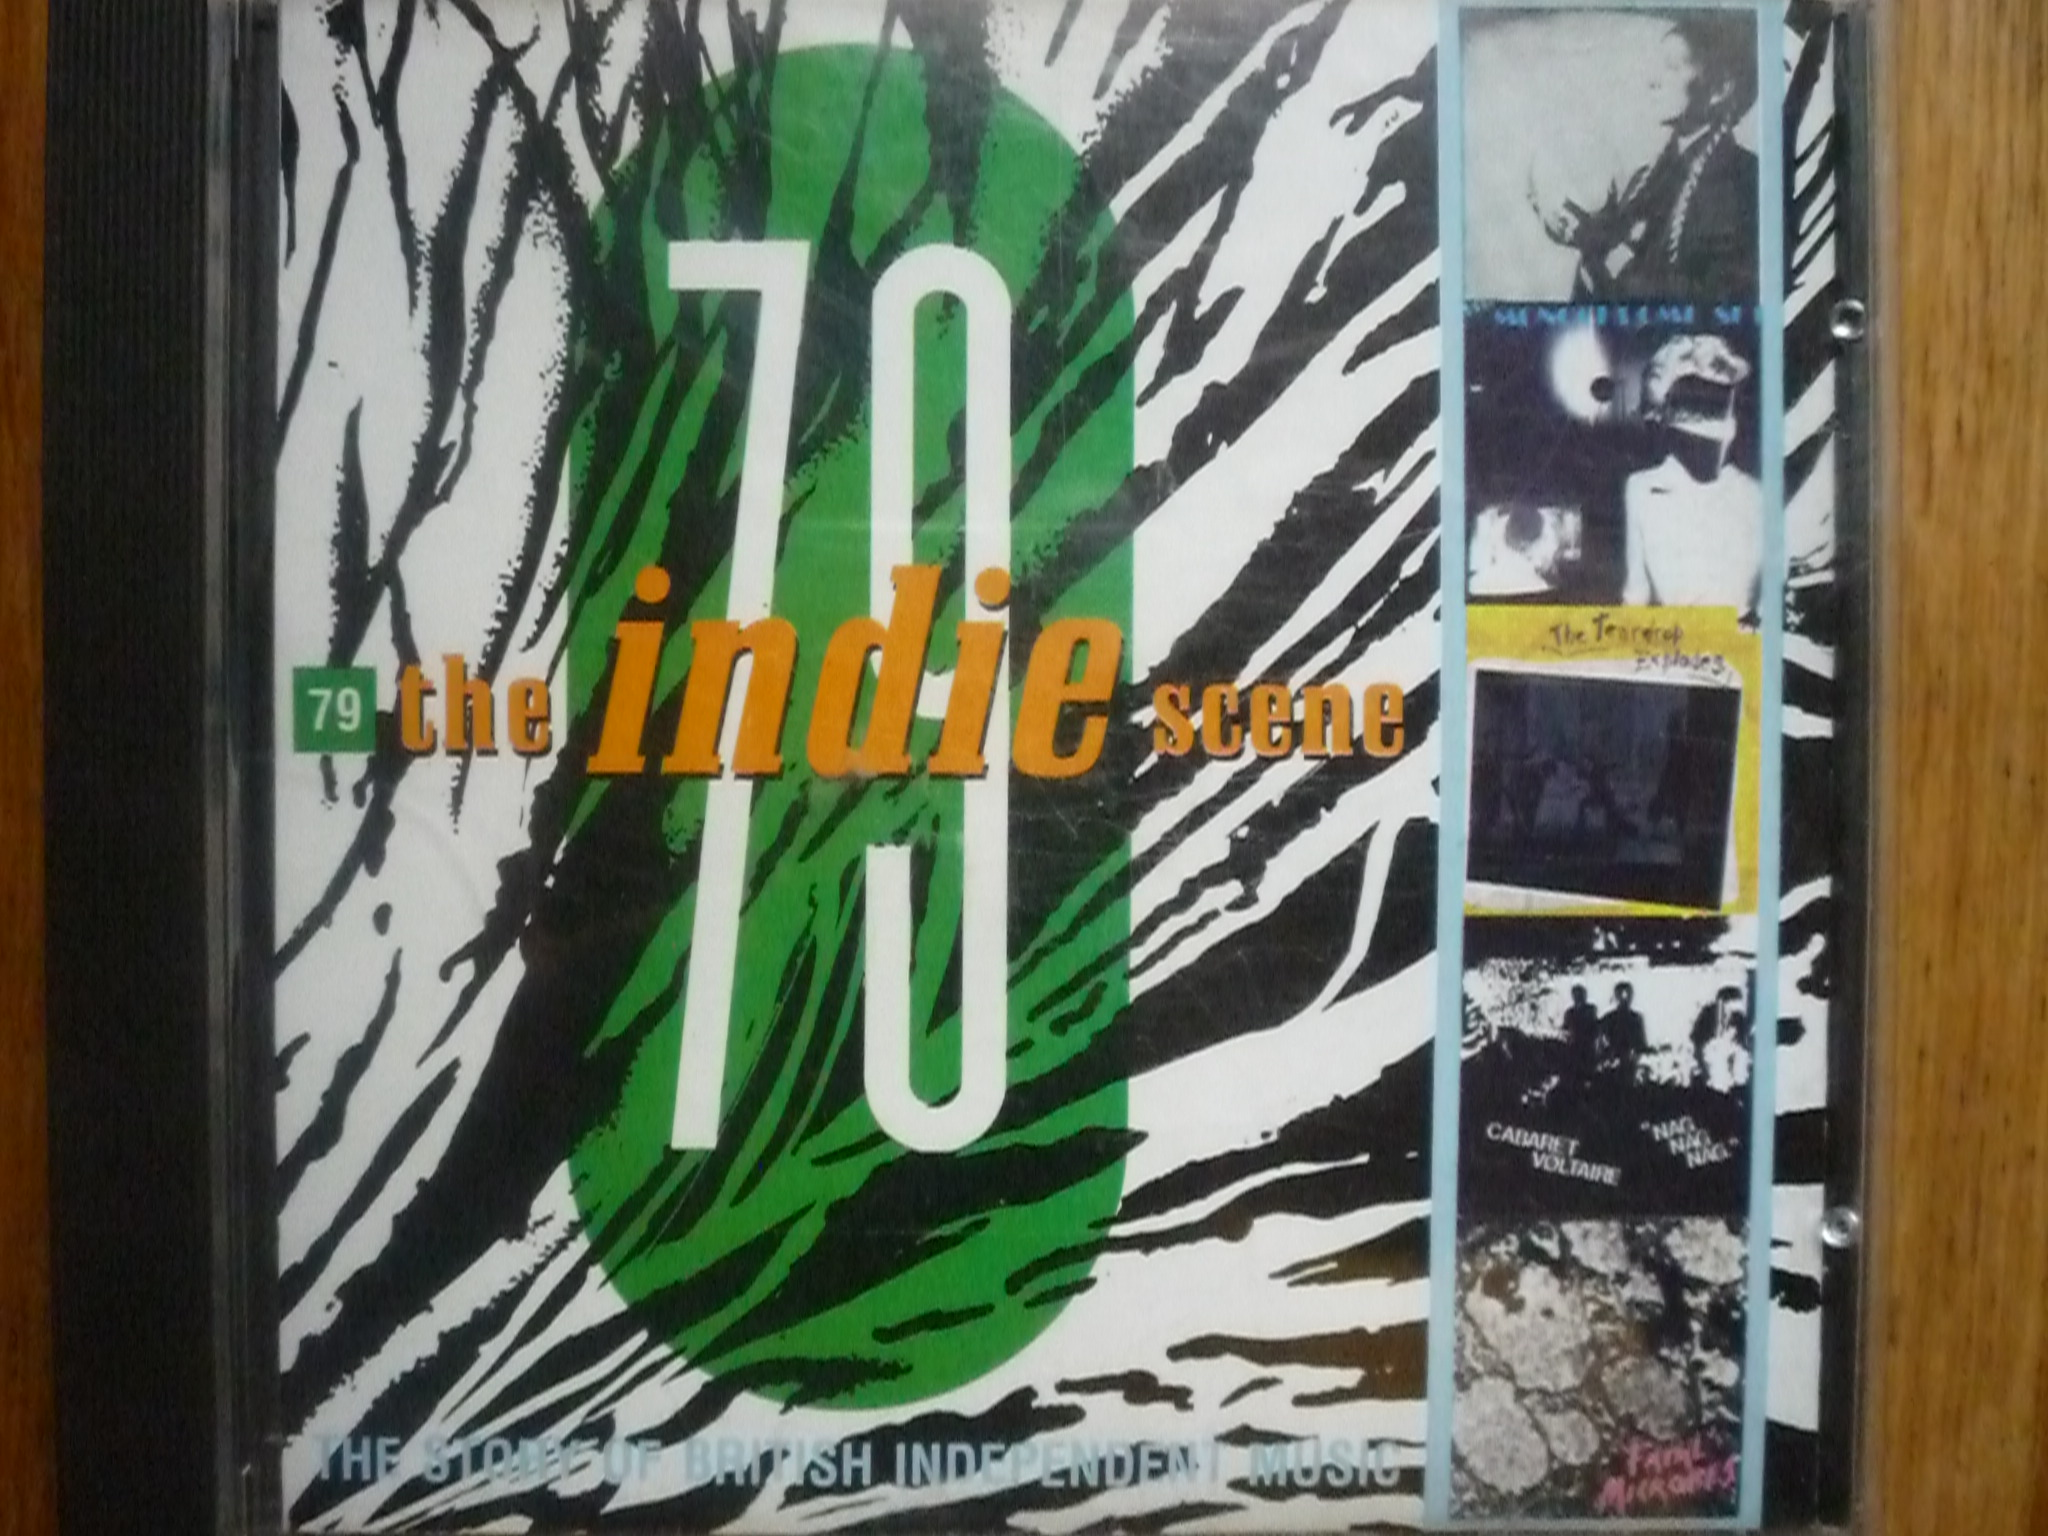 V.A. THE INDIE SCENE 79 R (INDEPENDENT MUSIC) CD